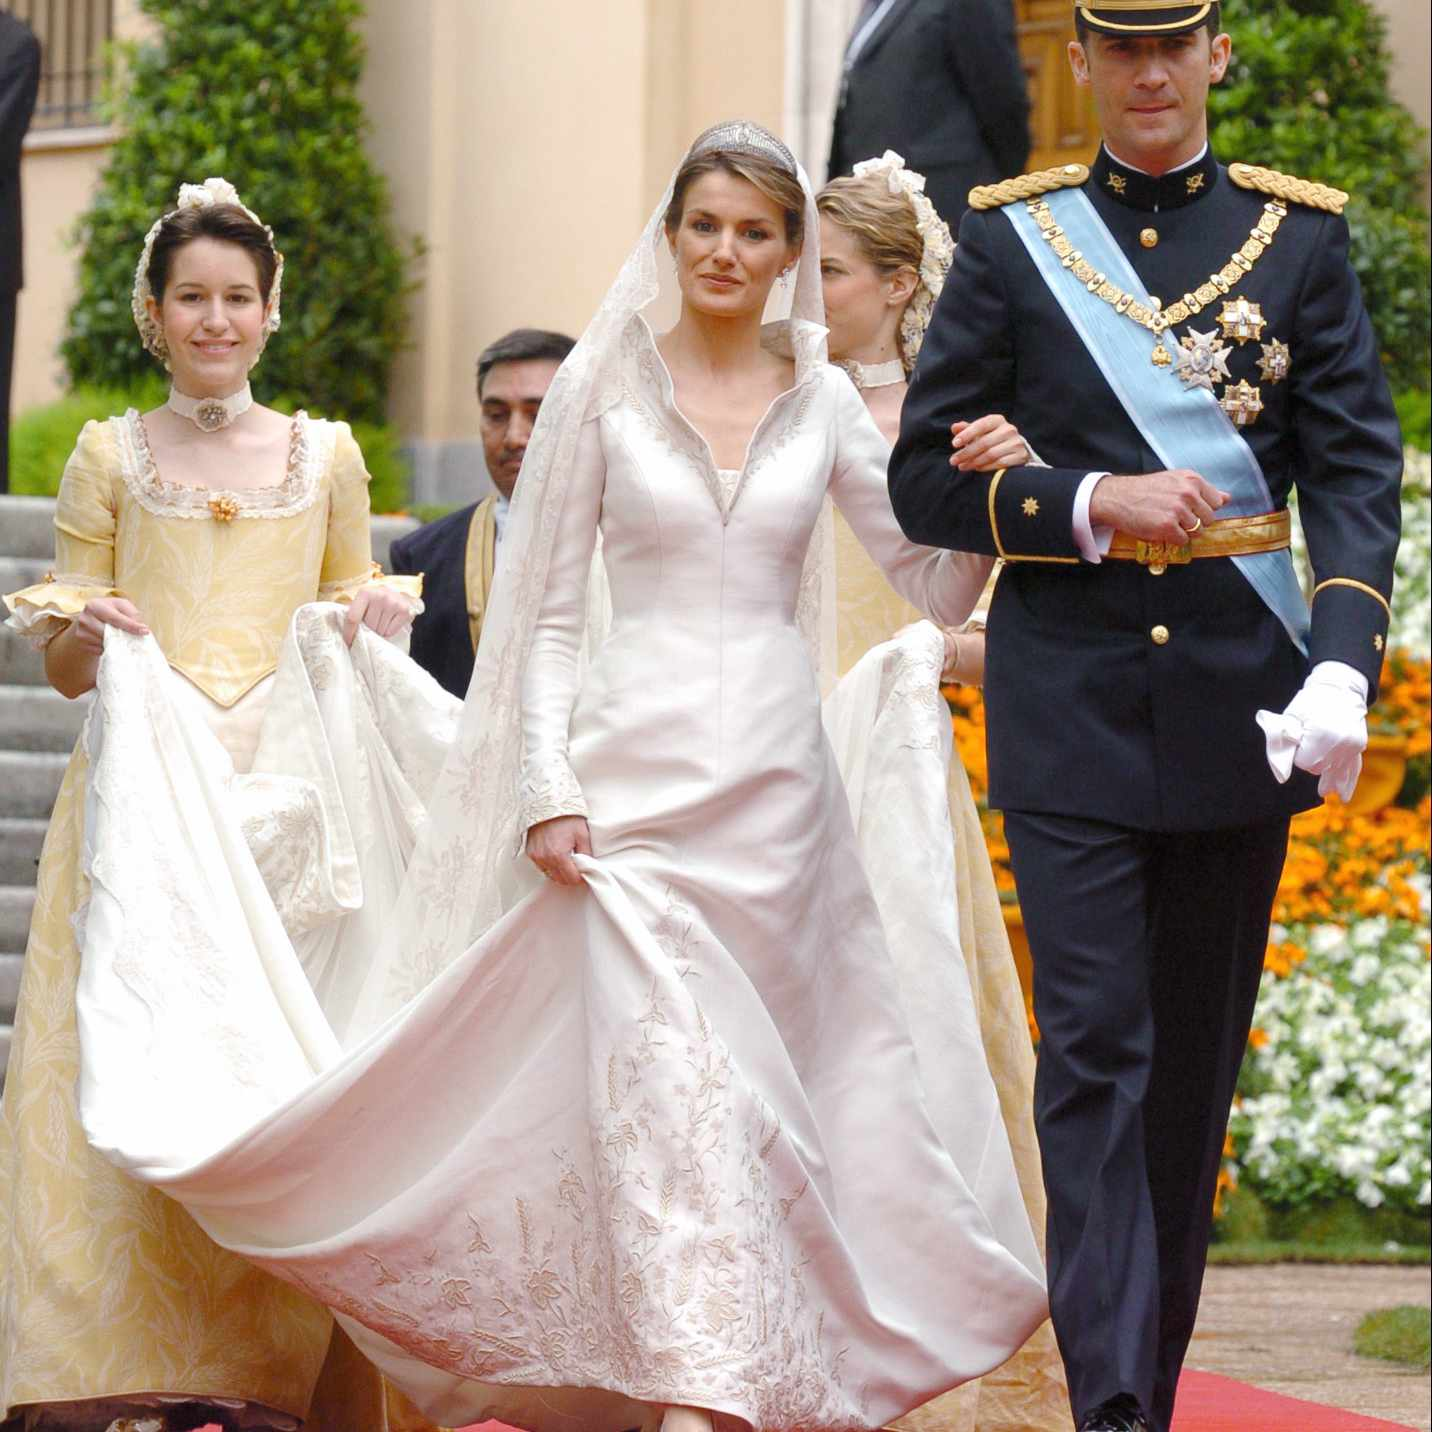 Queen Wedding: 38 Royal Wedding Dresses Throughout History